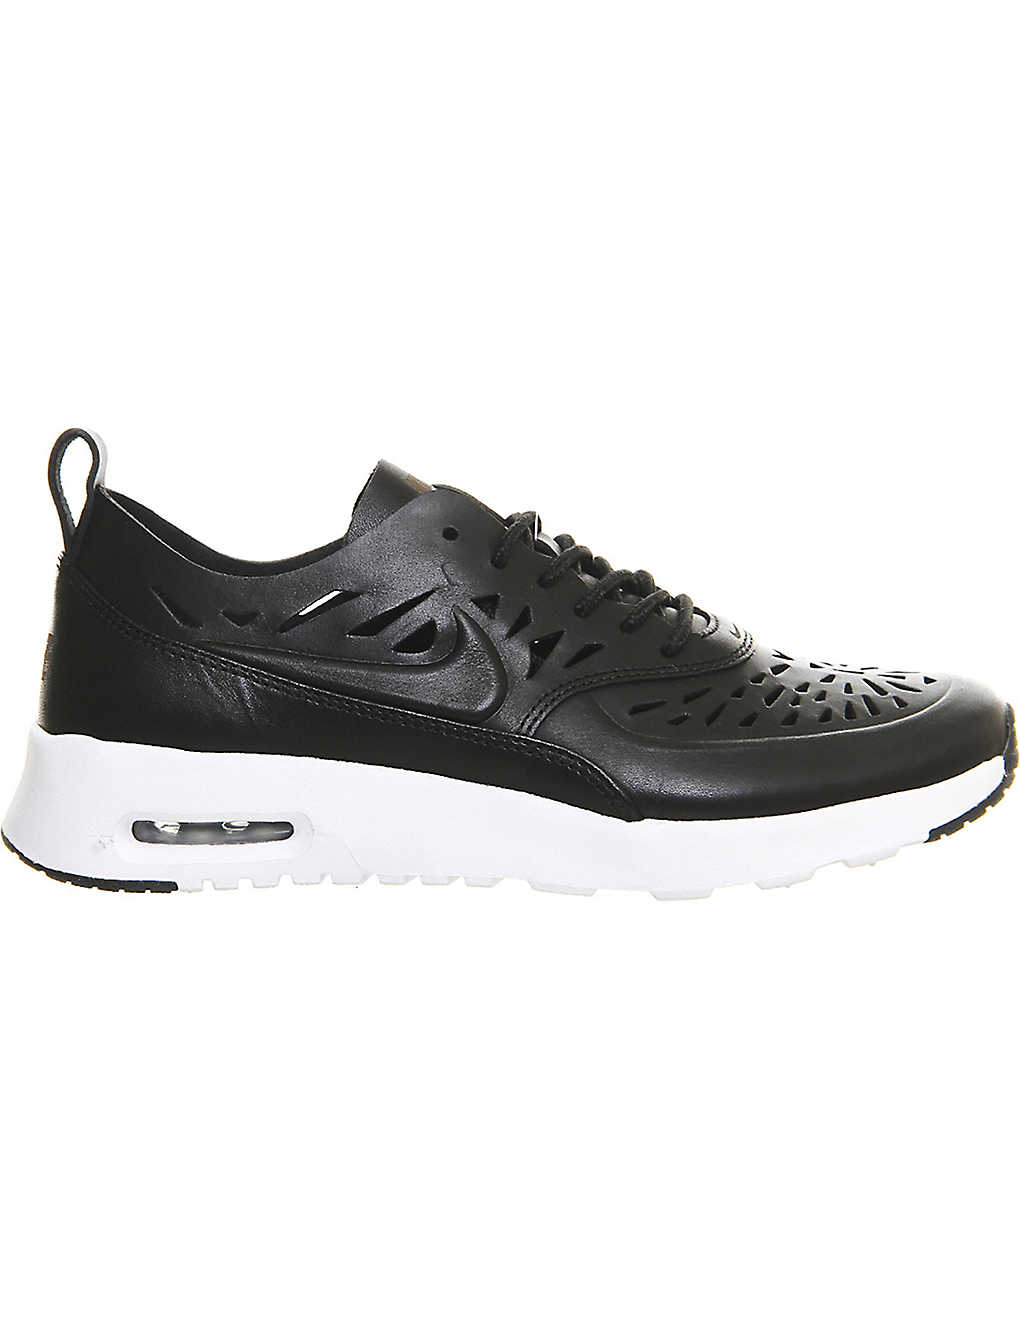 8d6e323947543 NIKE - Air max thea cut-out leather trainers | Selfridges.com